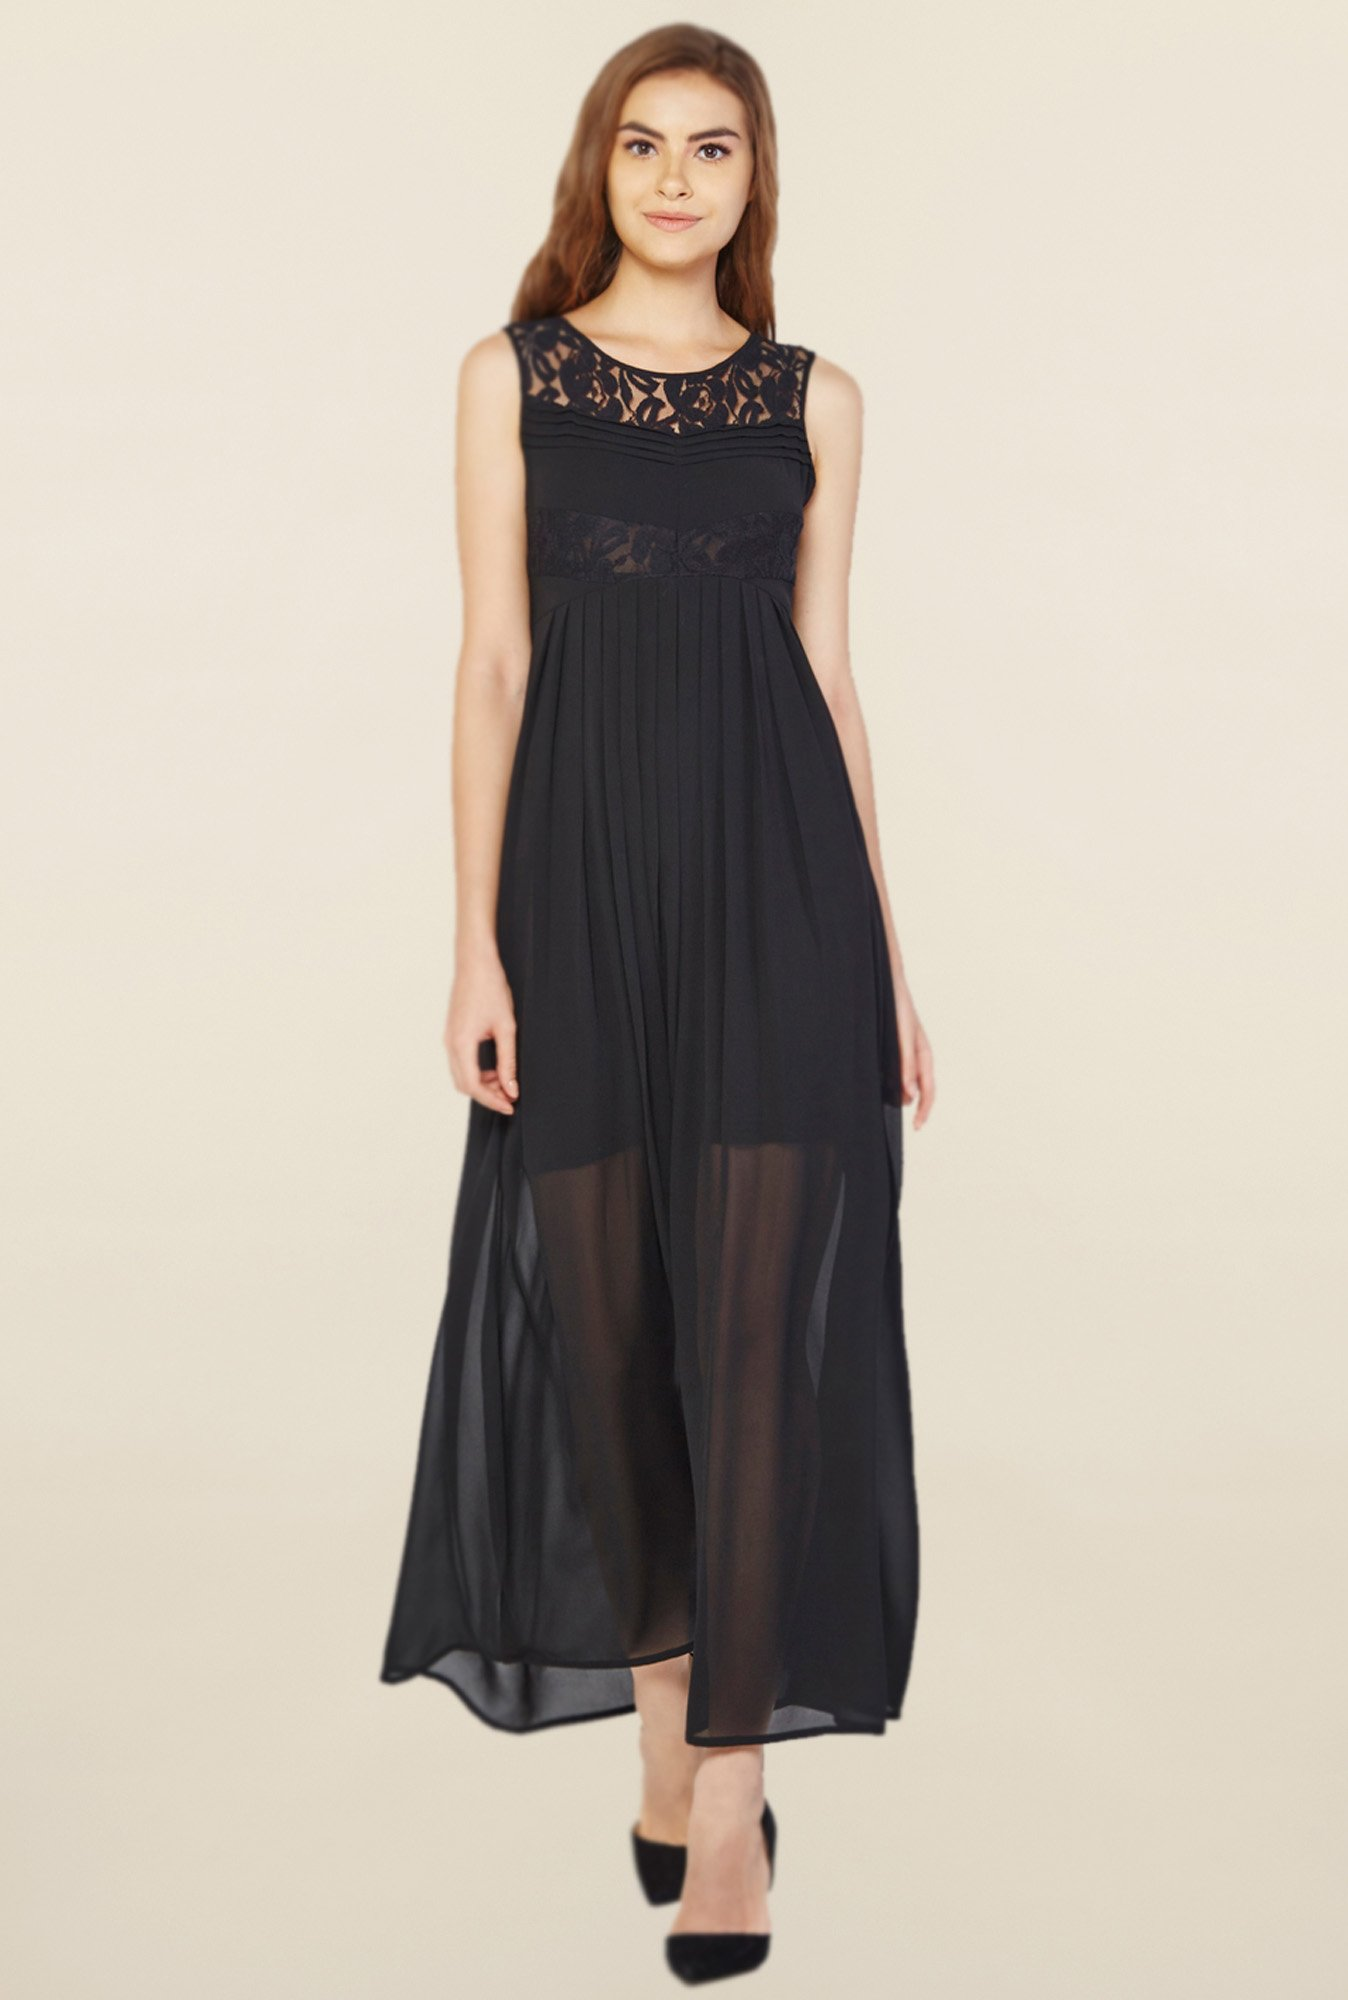 AND Black Lace Dress